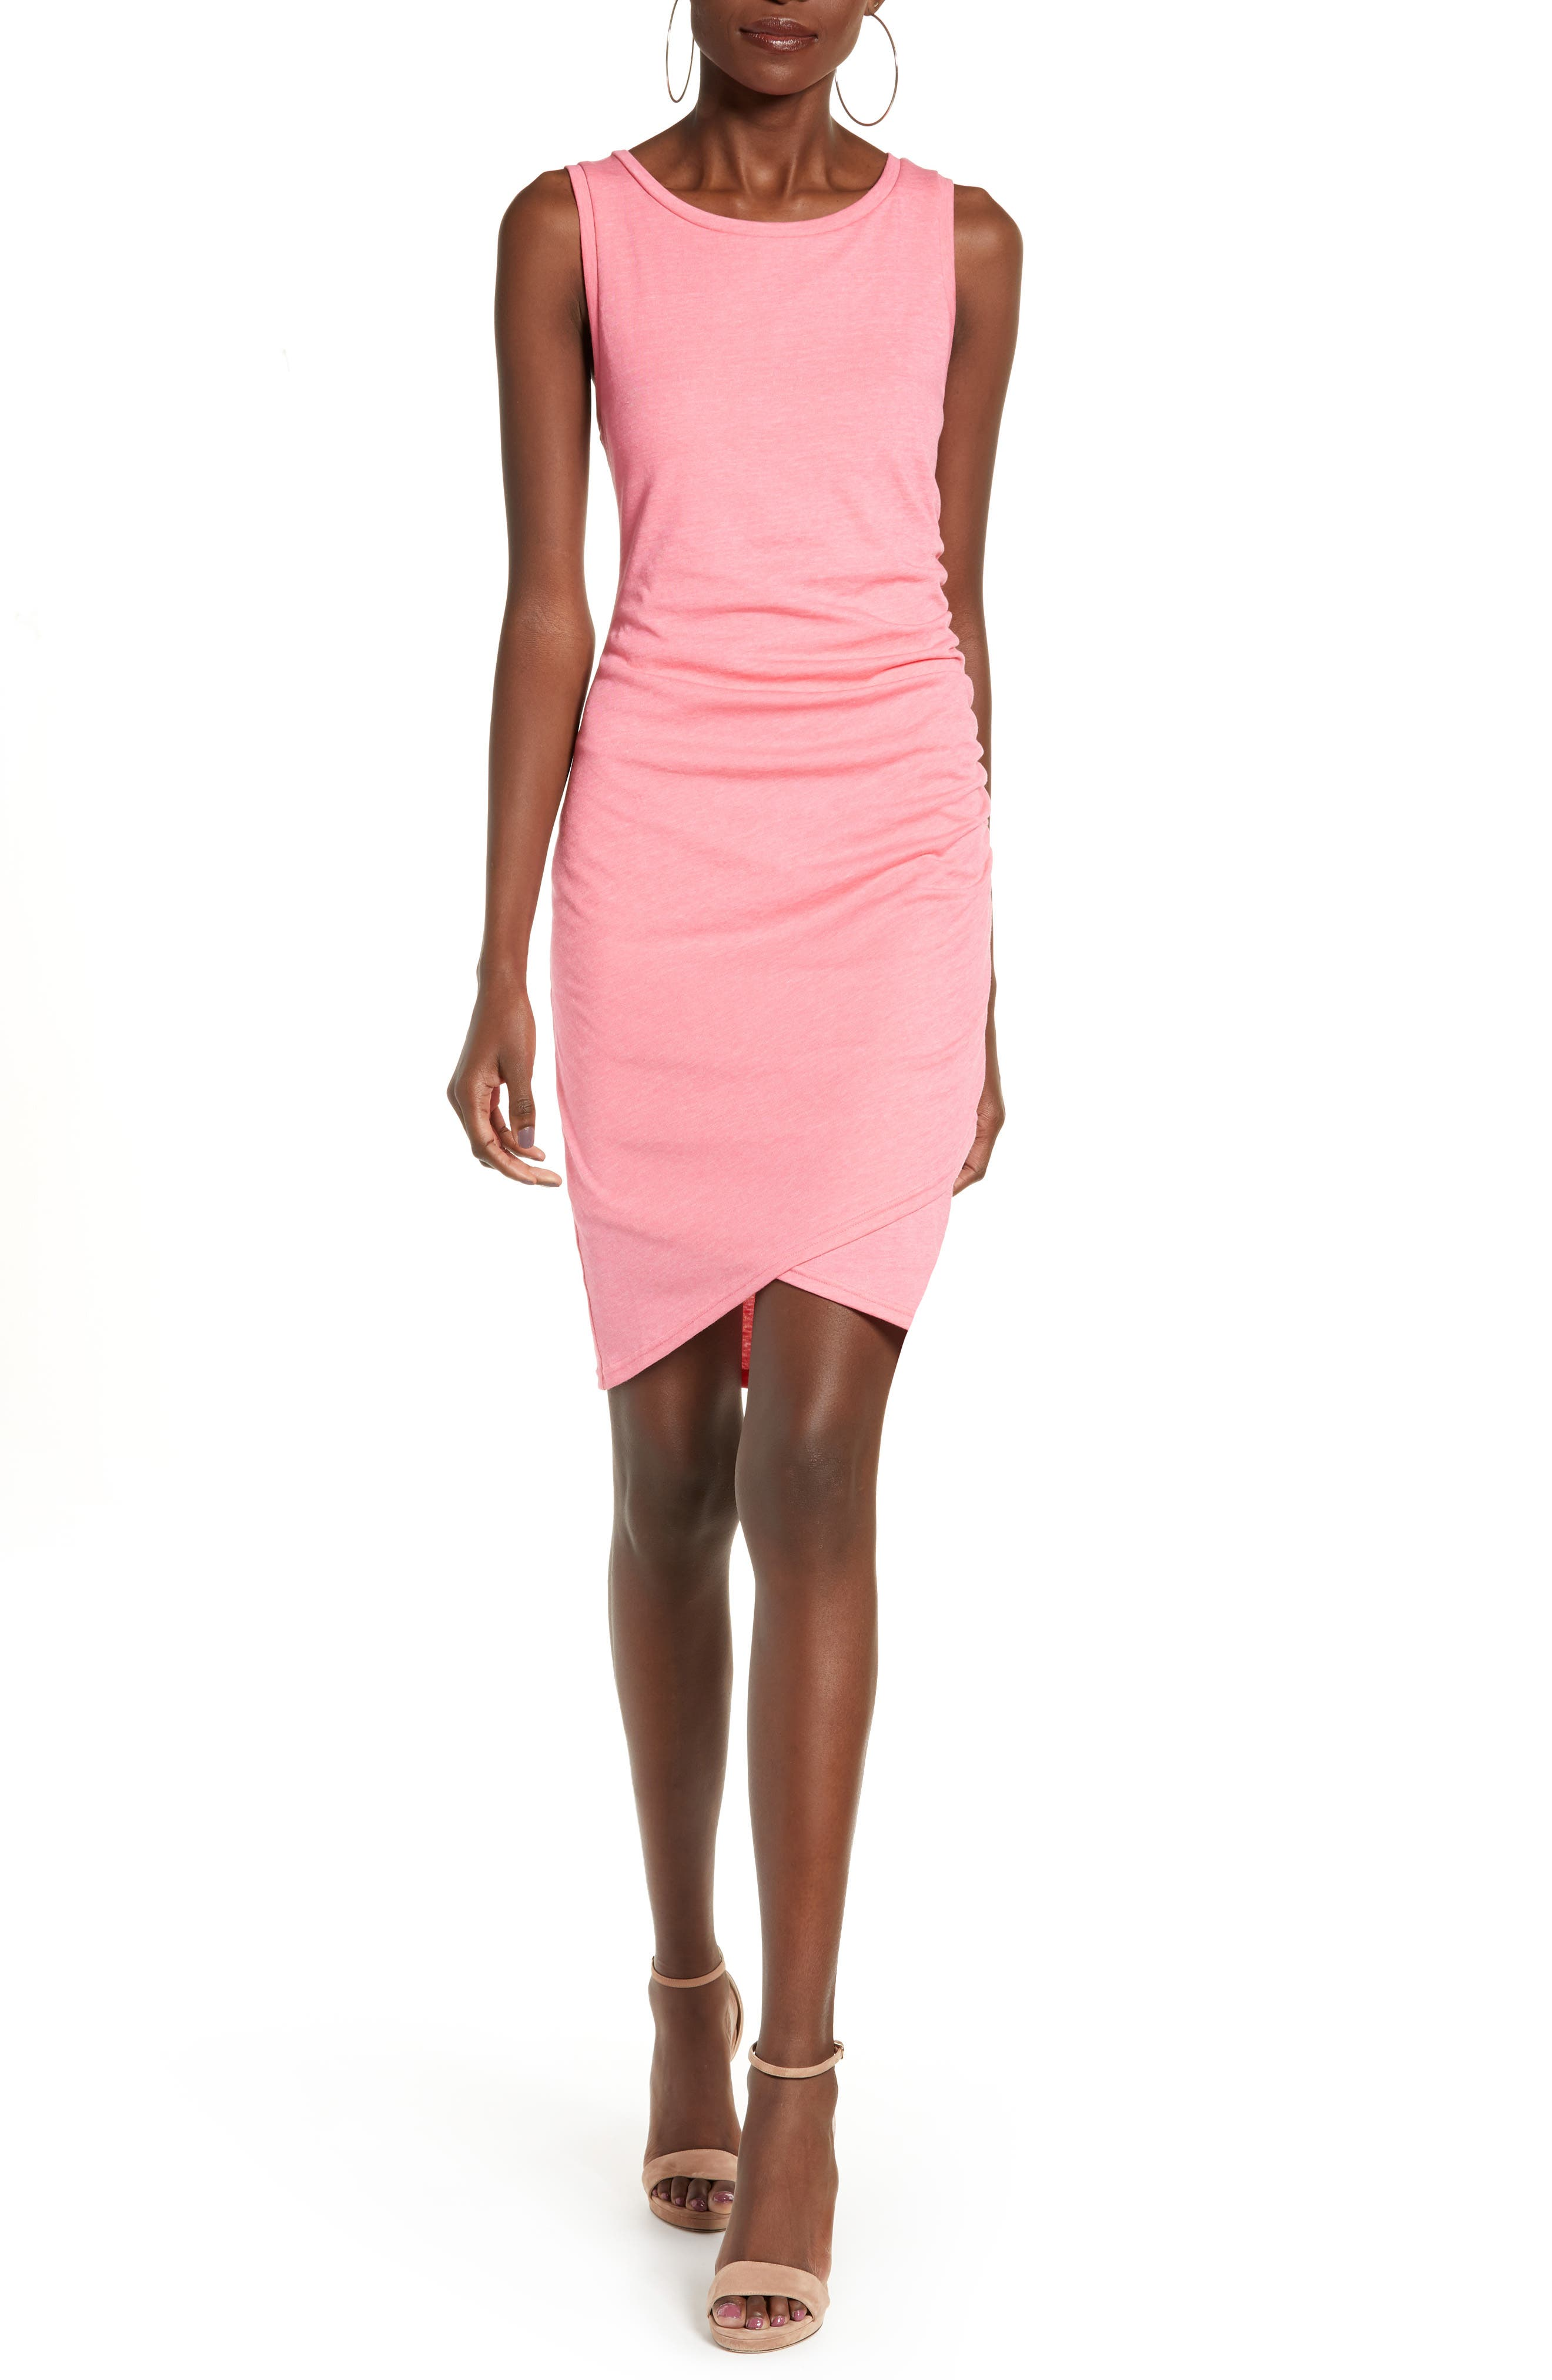 Norstrom's Dresses Short Hot Pink Party